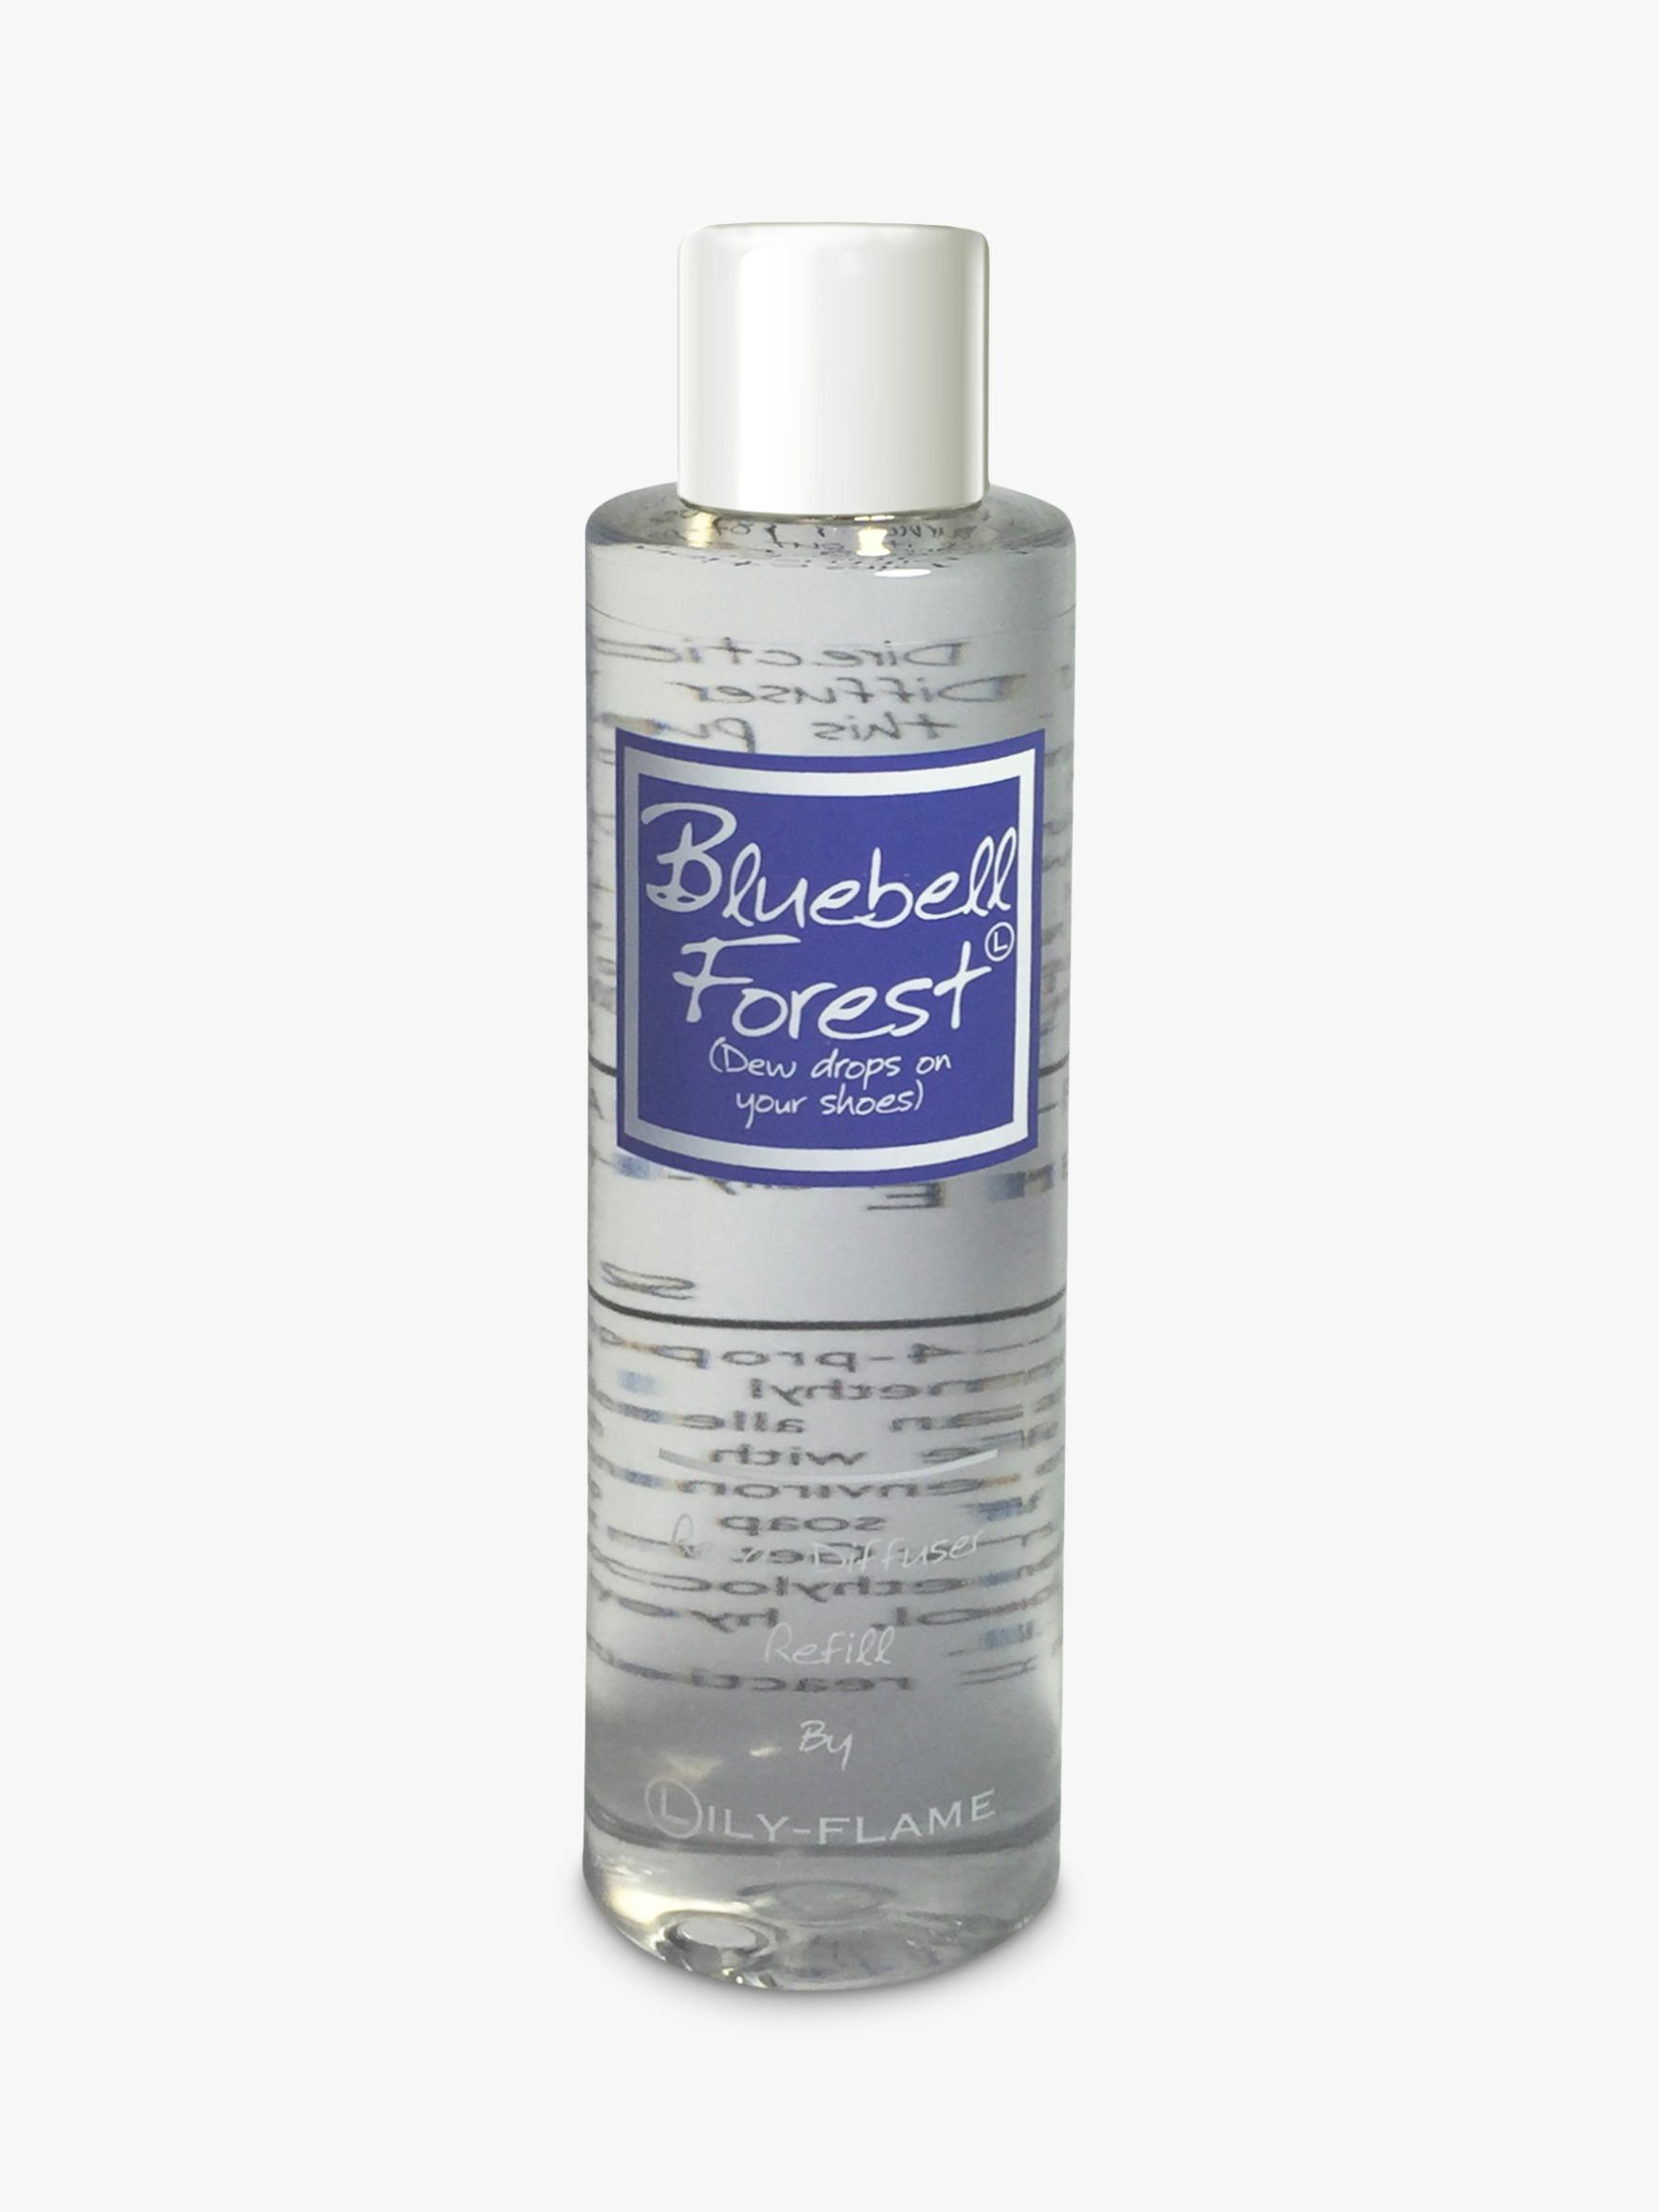 Lily-Flame Lily-Flame Bluebell Forest Diffuser Refill